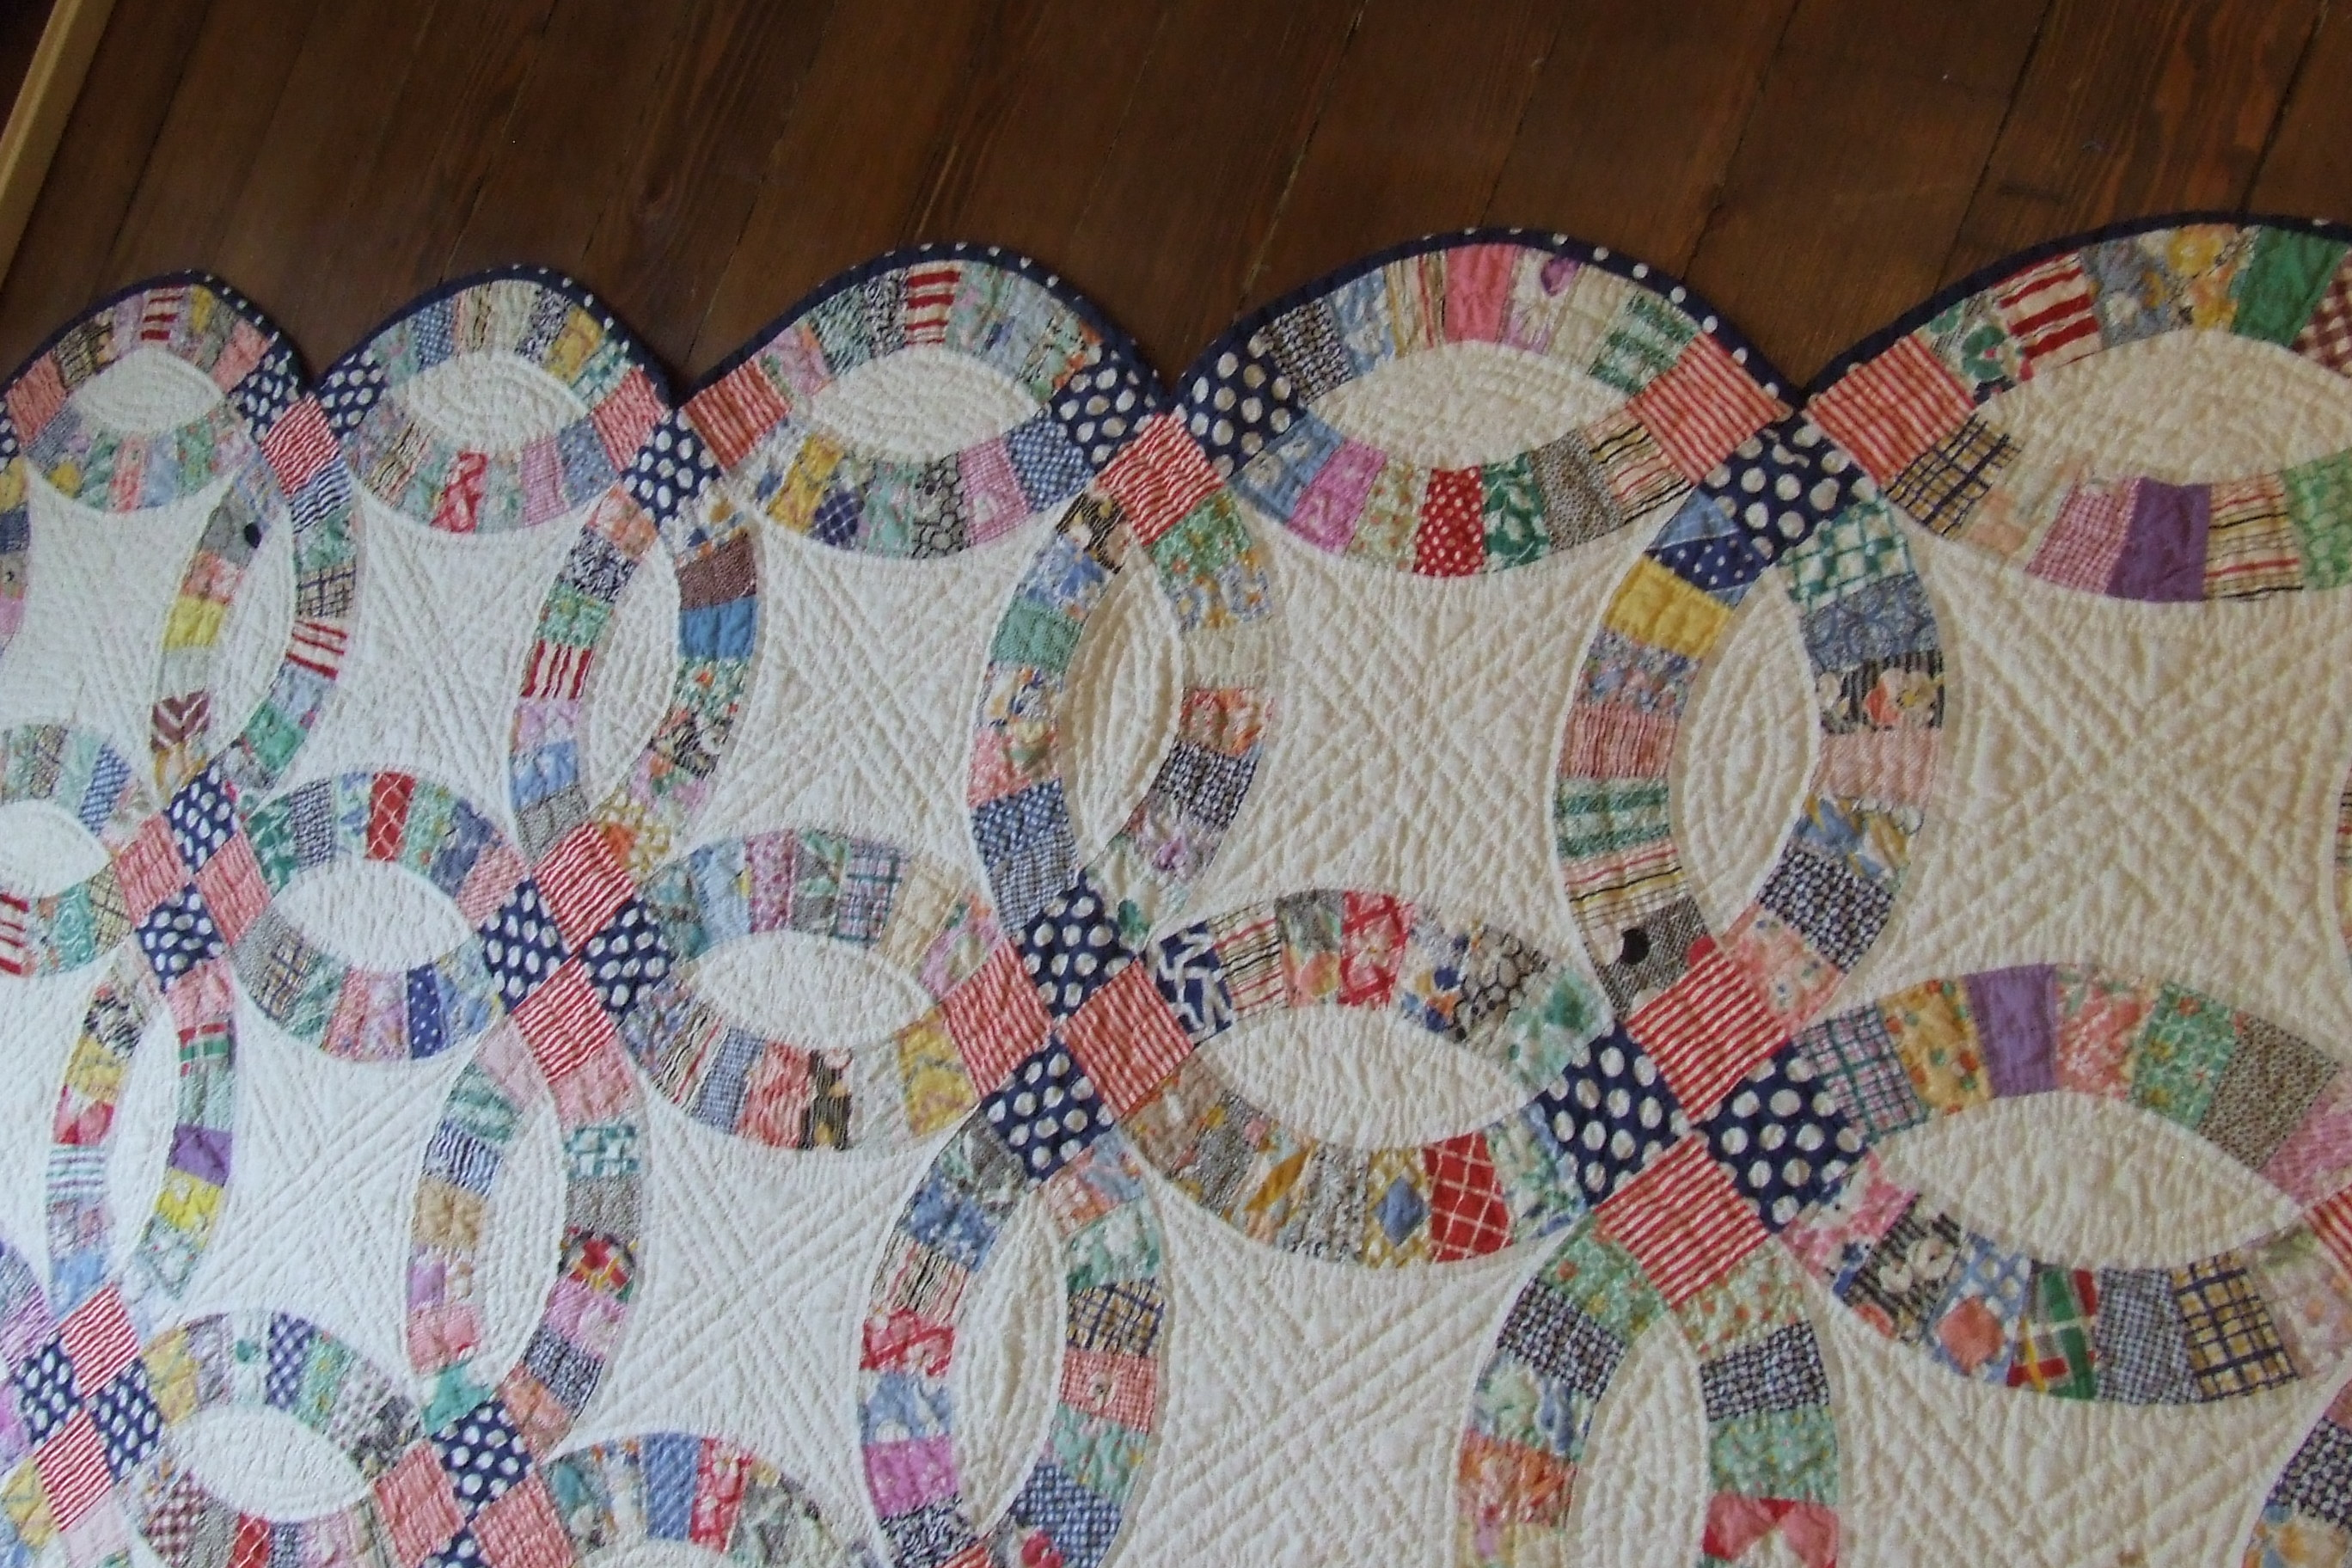 wedding ring quilt for sale wedding ring sale wedding ring quilt for sale